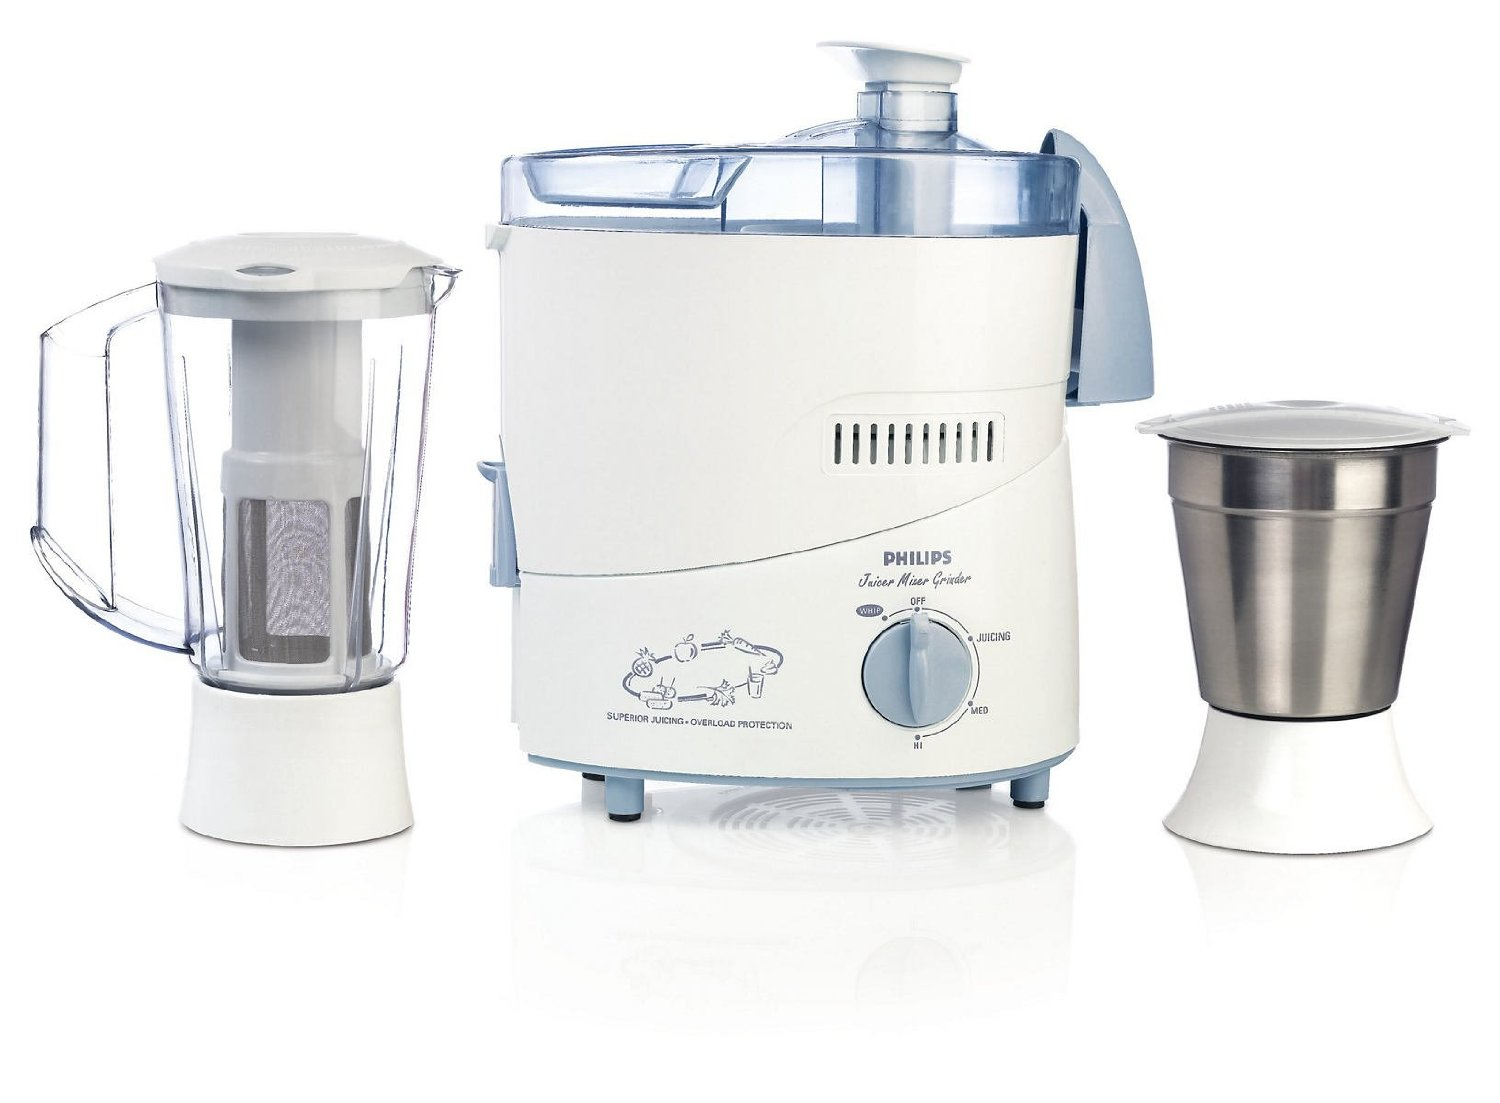 Philips HL1631 500-Watt 2 Jar Juicer Mixer Grinder